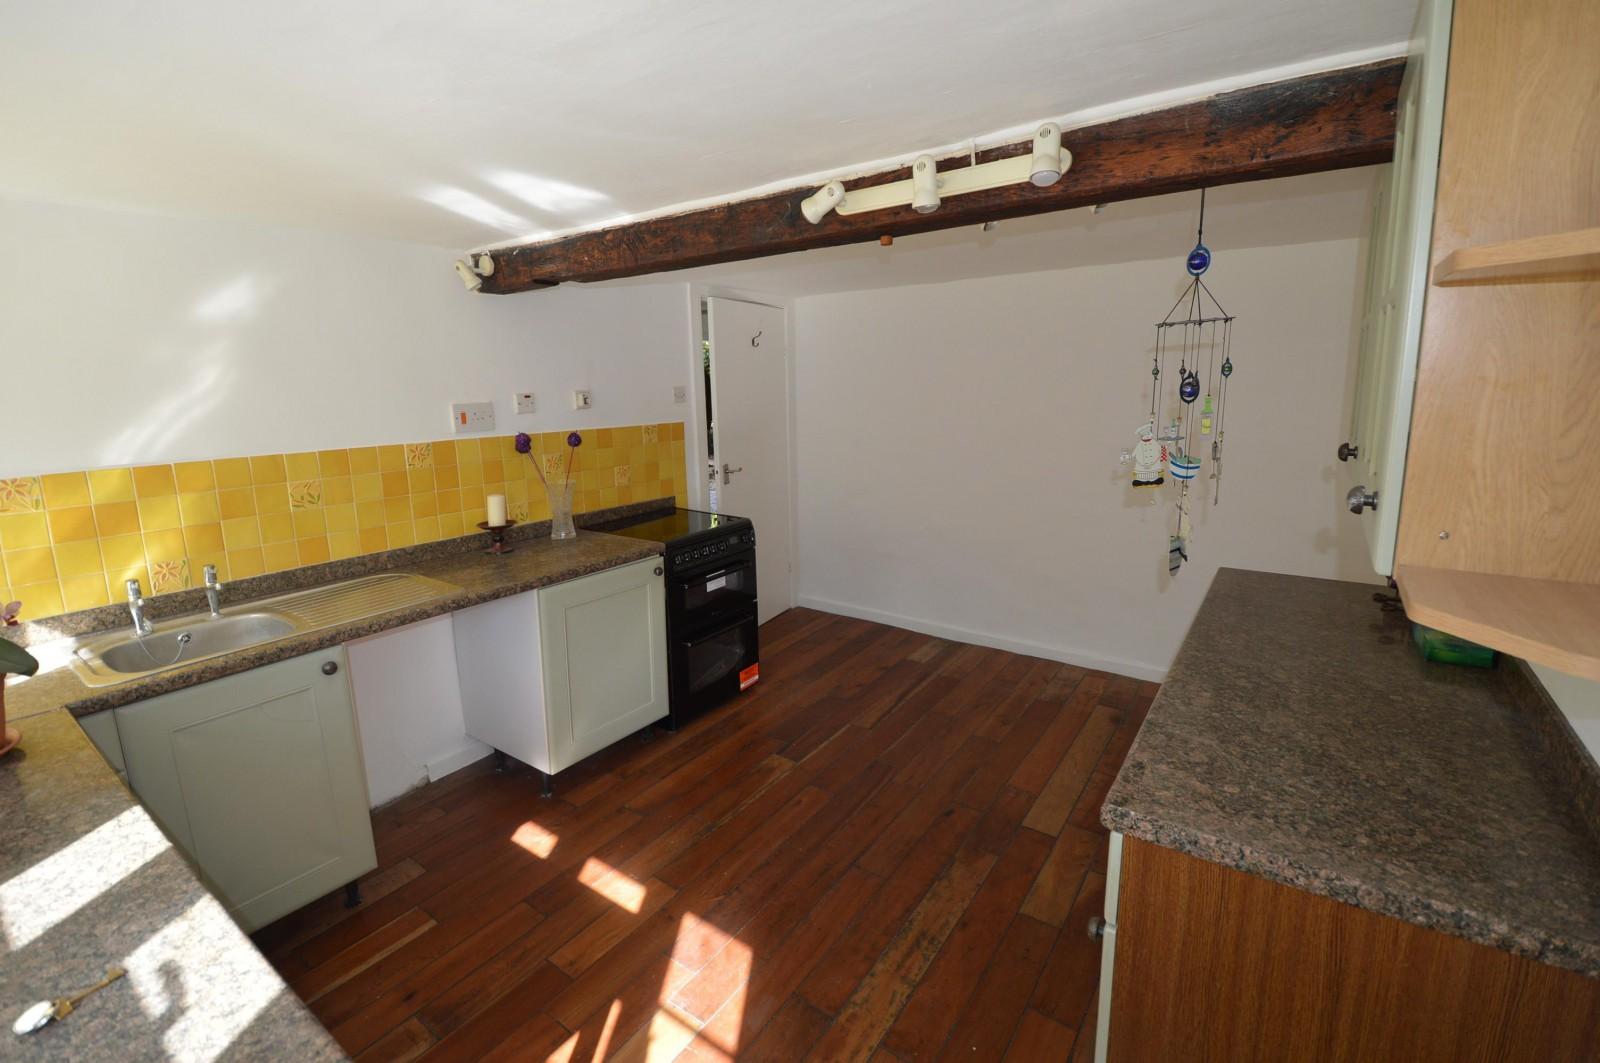 Kitchen Property to let in West Meon